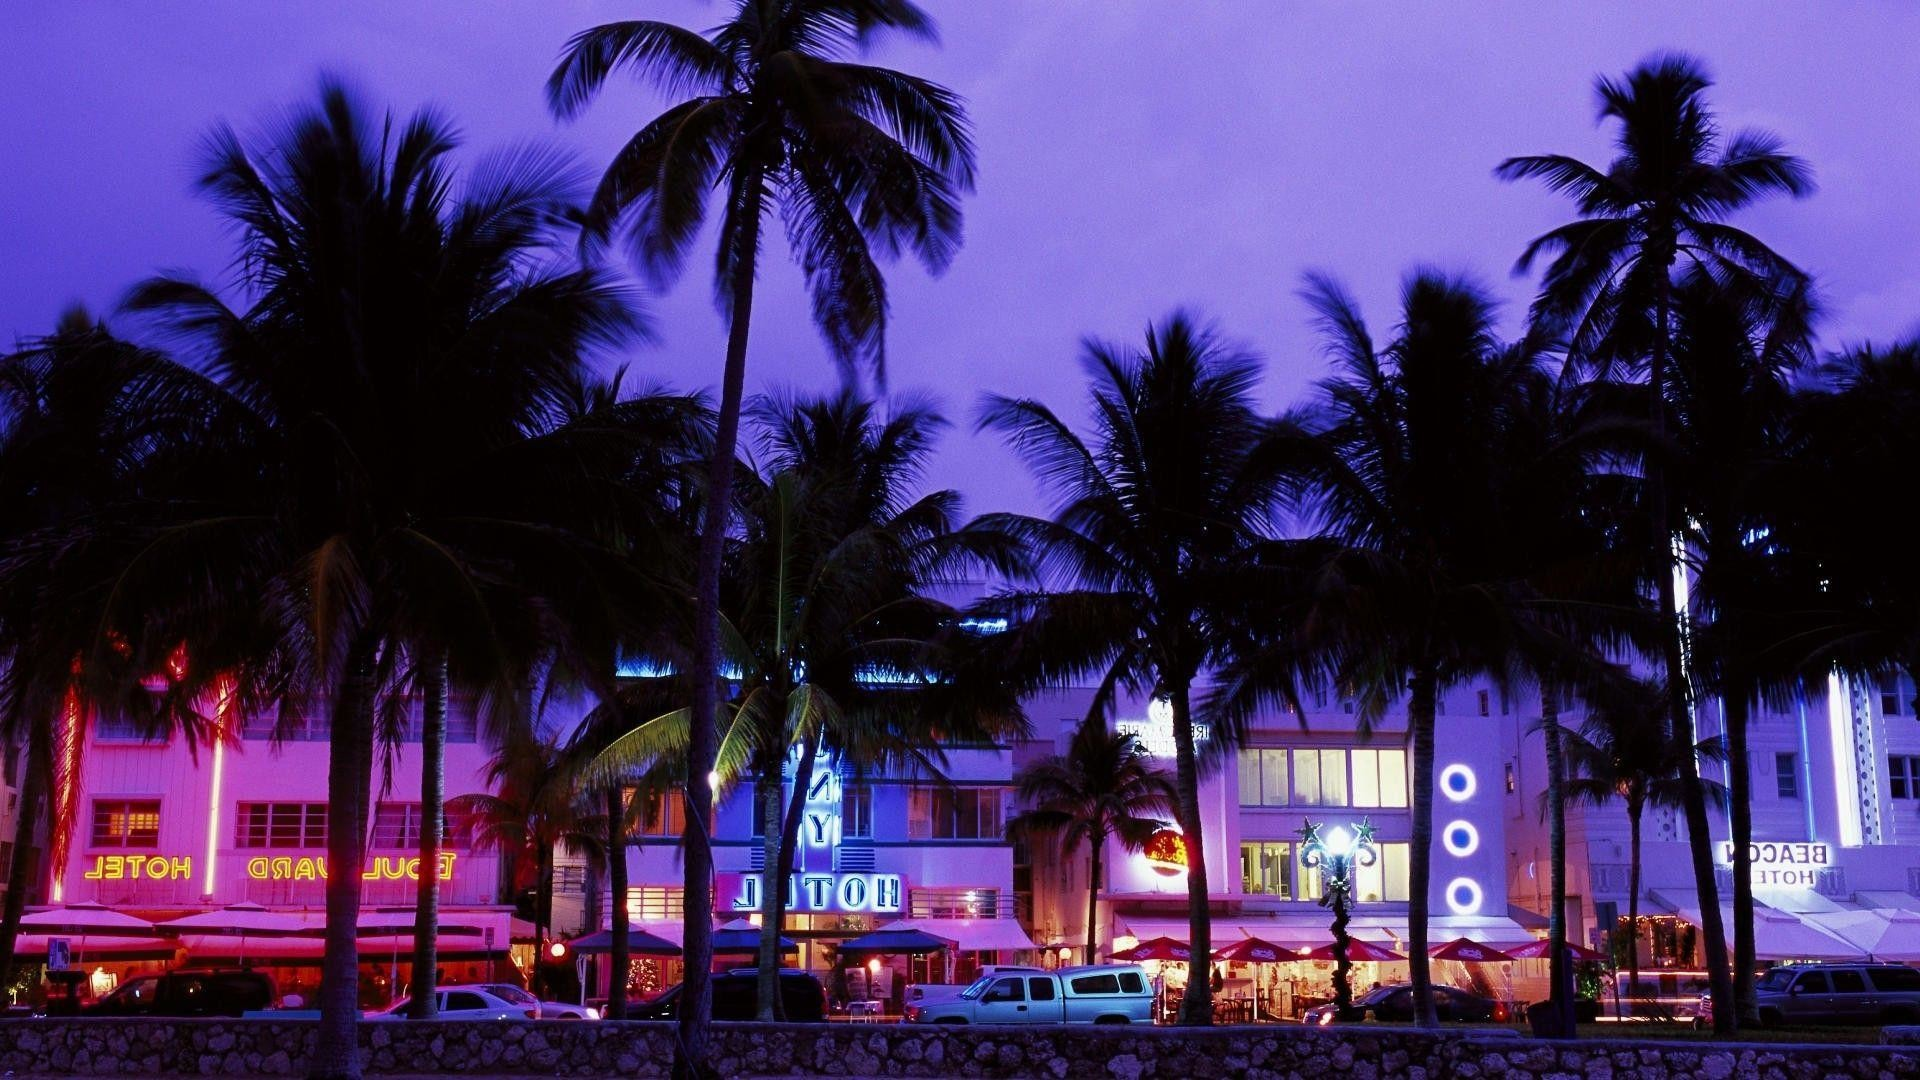 1920x1080 Grand Theft Auto Vice City, Hotels, Beach, Palm Trees, Neon .